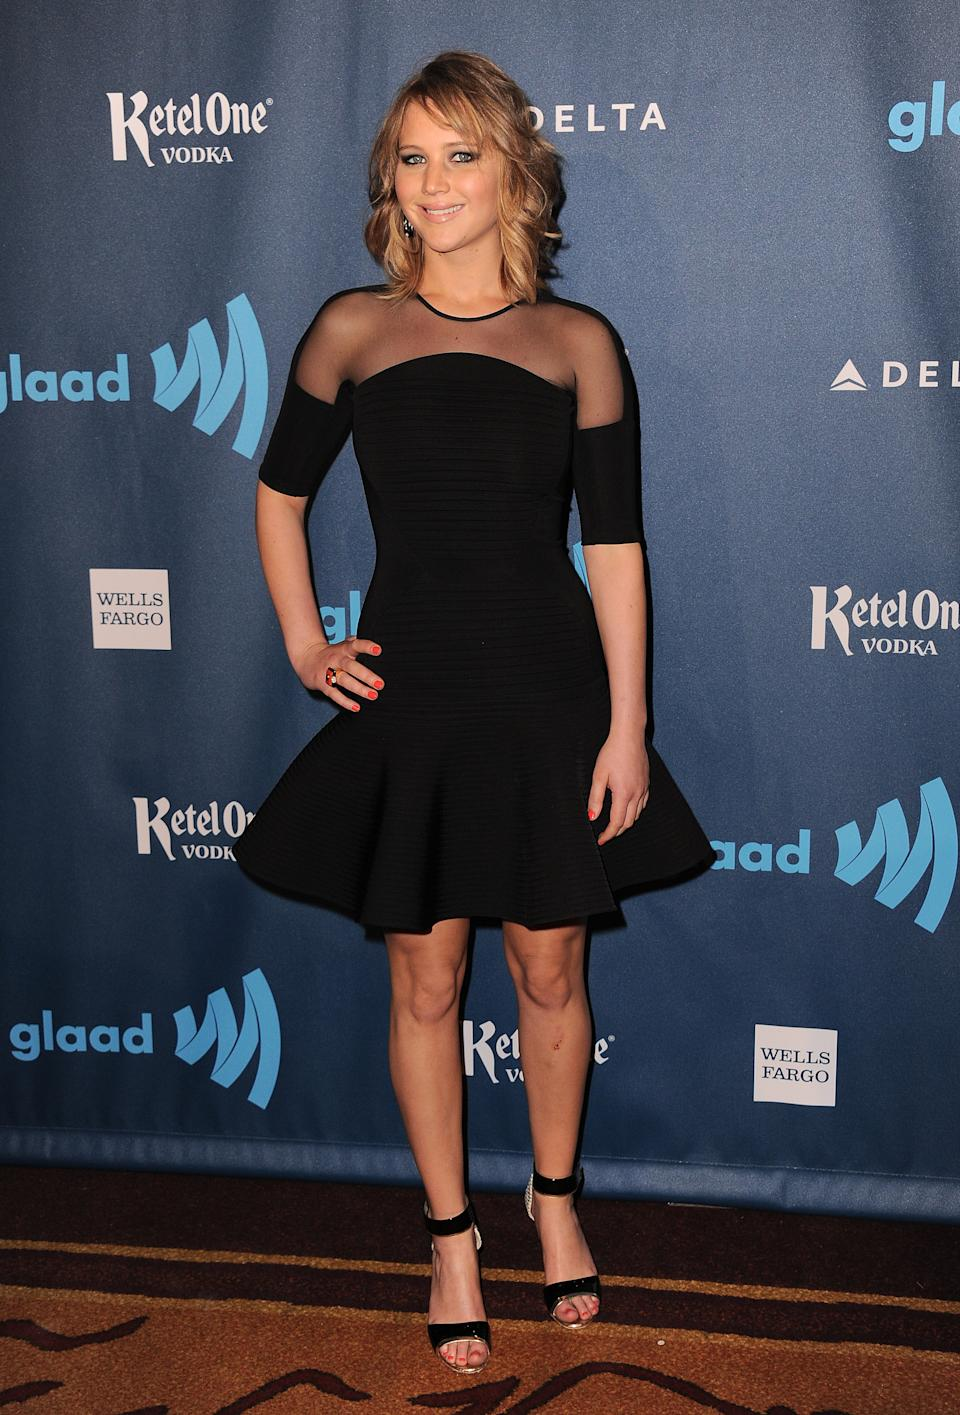 Jennifer Lawrence arrives at the 24th Annual GLAAD Media Awards at the JW Marriott on Saturday, April 20, 2013 in Los Angeles. (Photo by Jordan Strauss/Invision/AP)